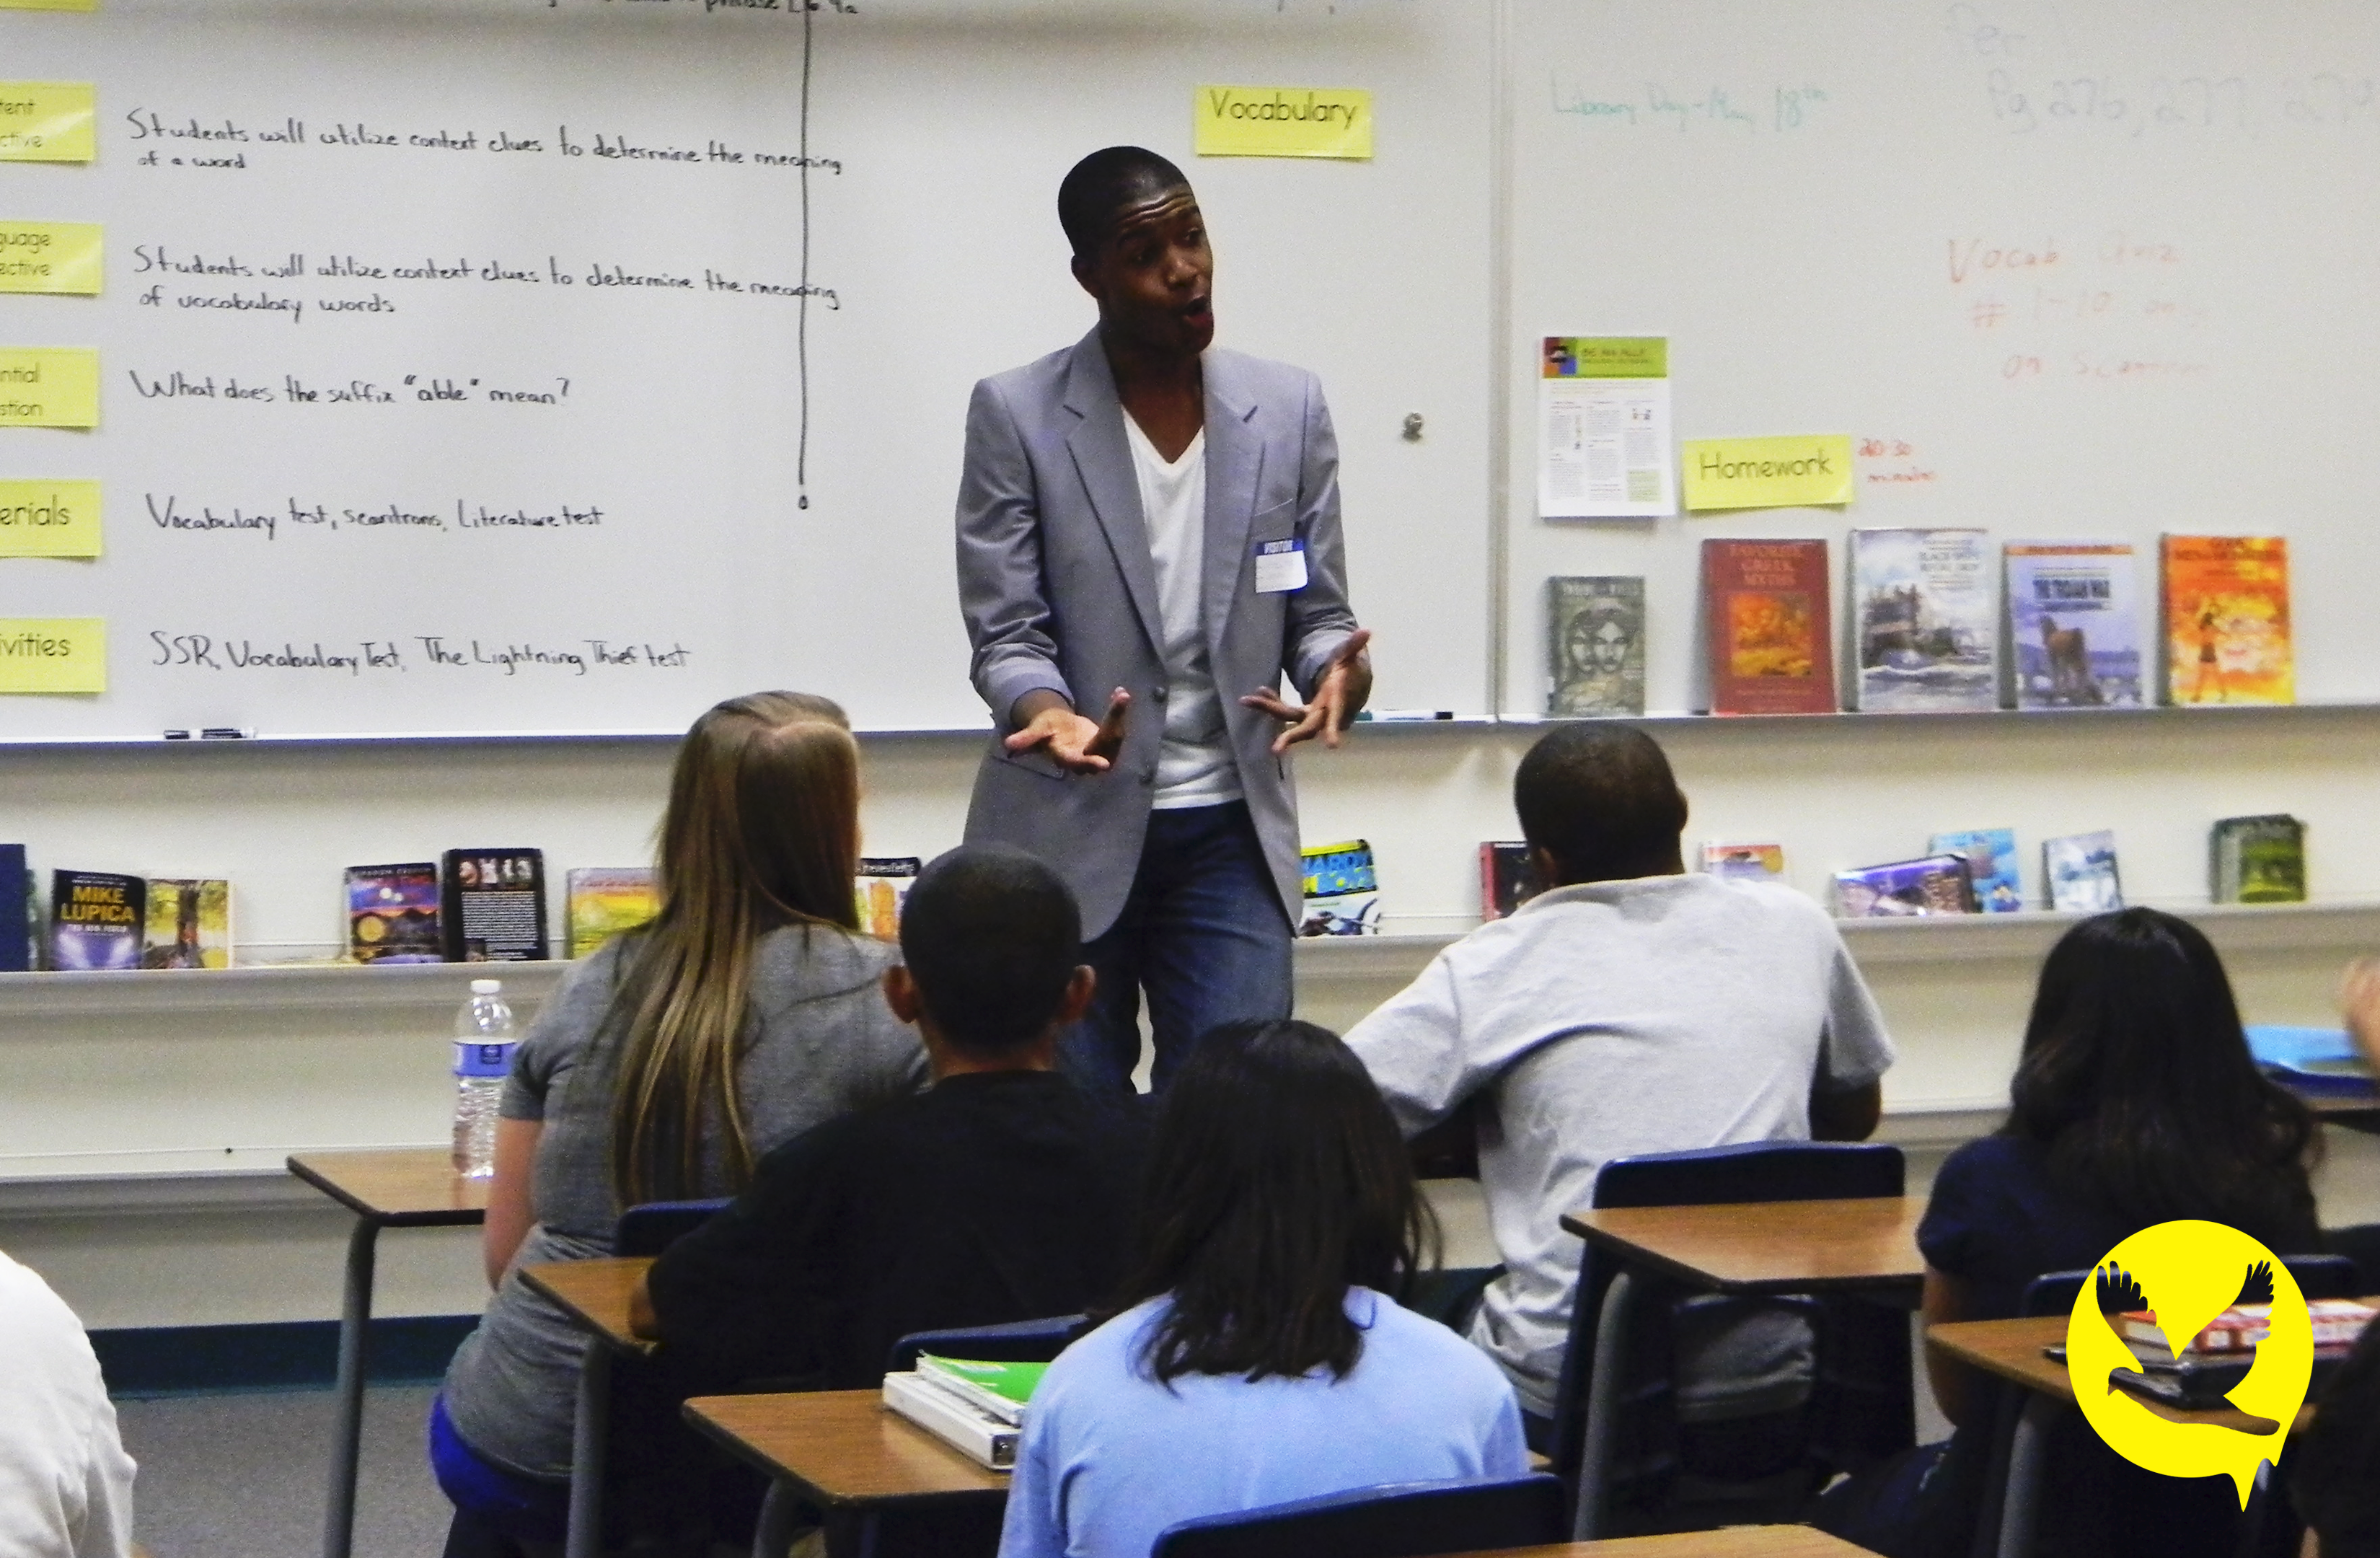 [Foundation FLY]: Bringing Foundation FLY to a Group of Students at Lied Middle School, Las Vegas, NV.